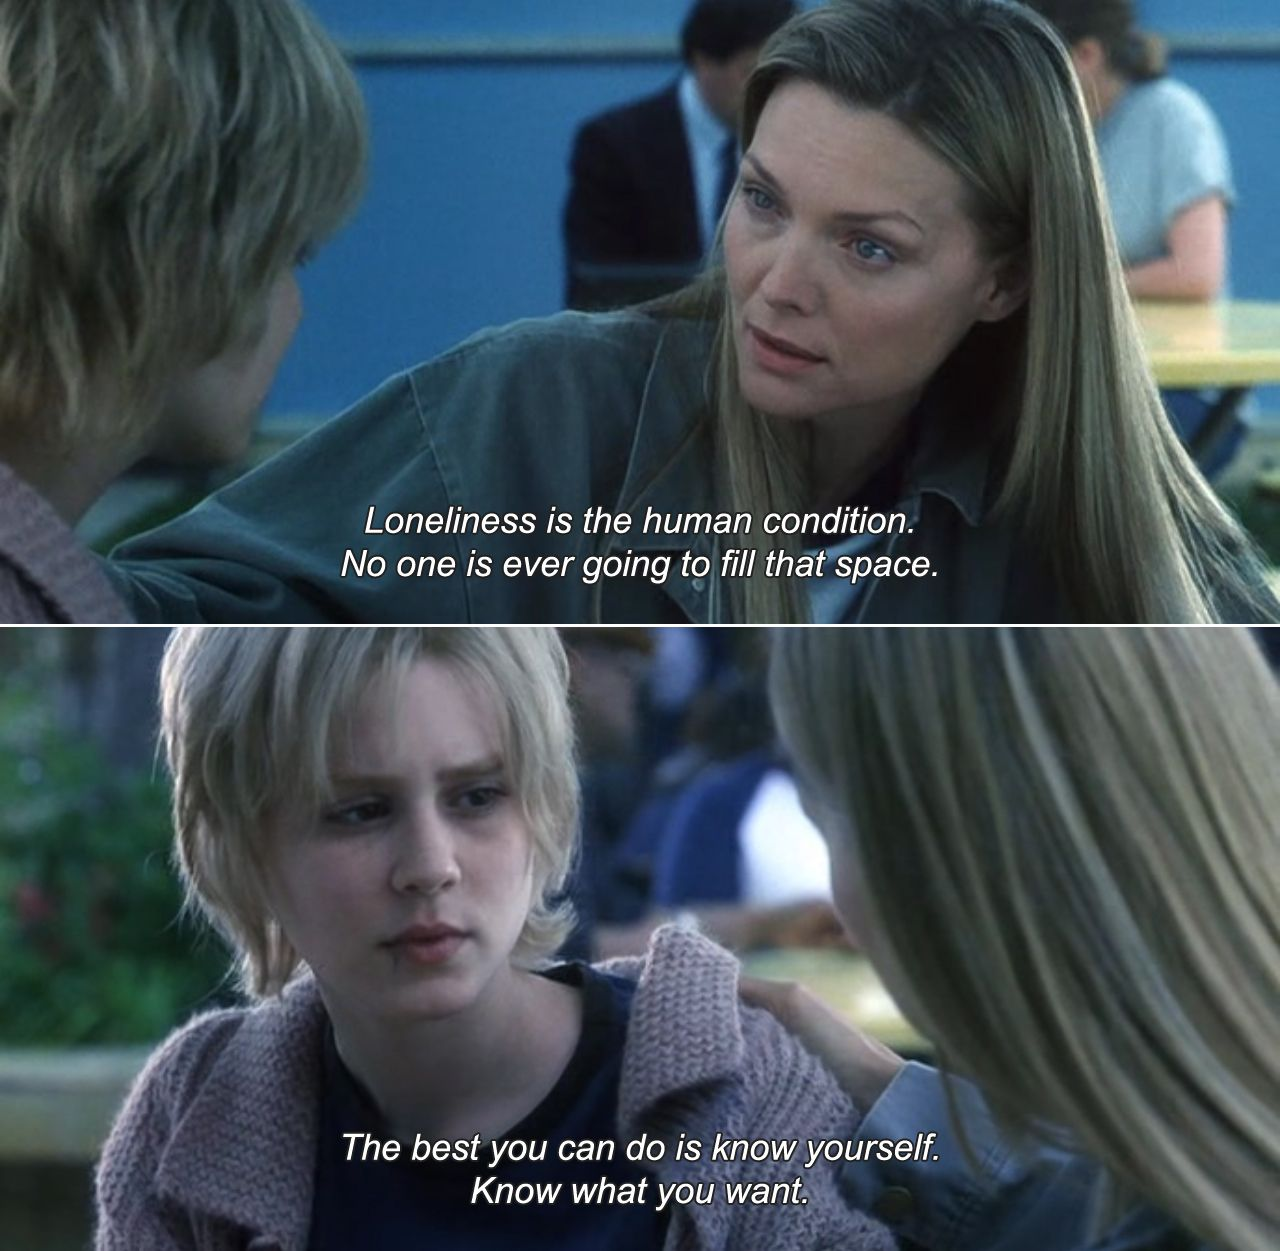 White Oleander 2002 Ingrid Loneliness is the human condition No one is